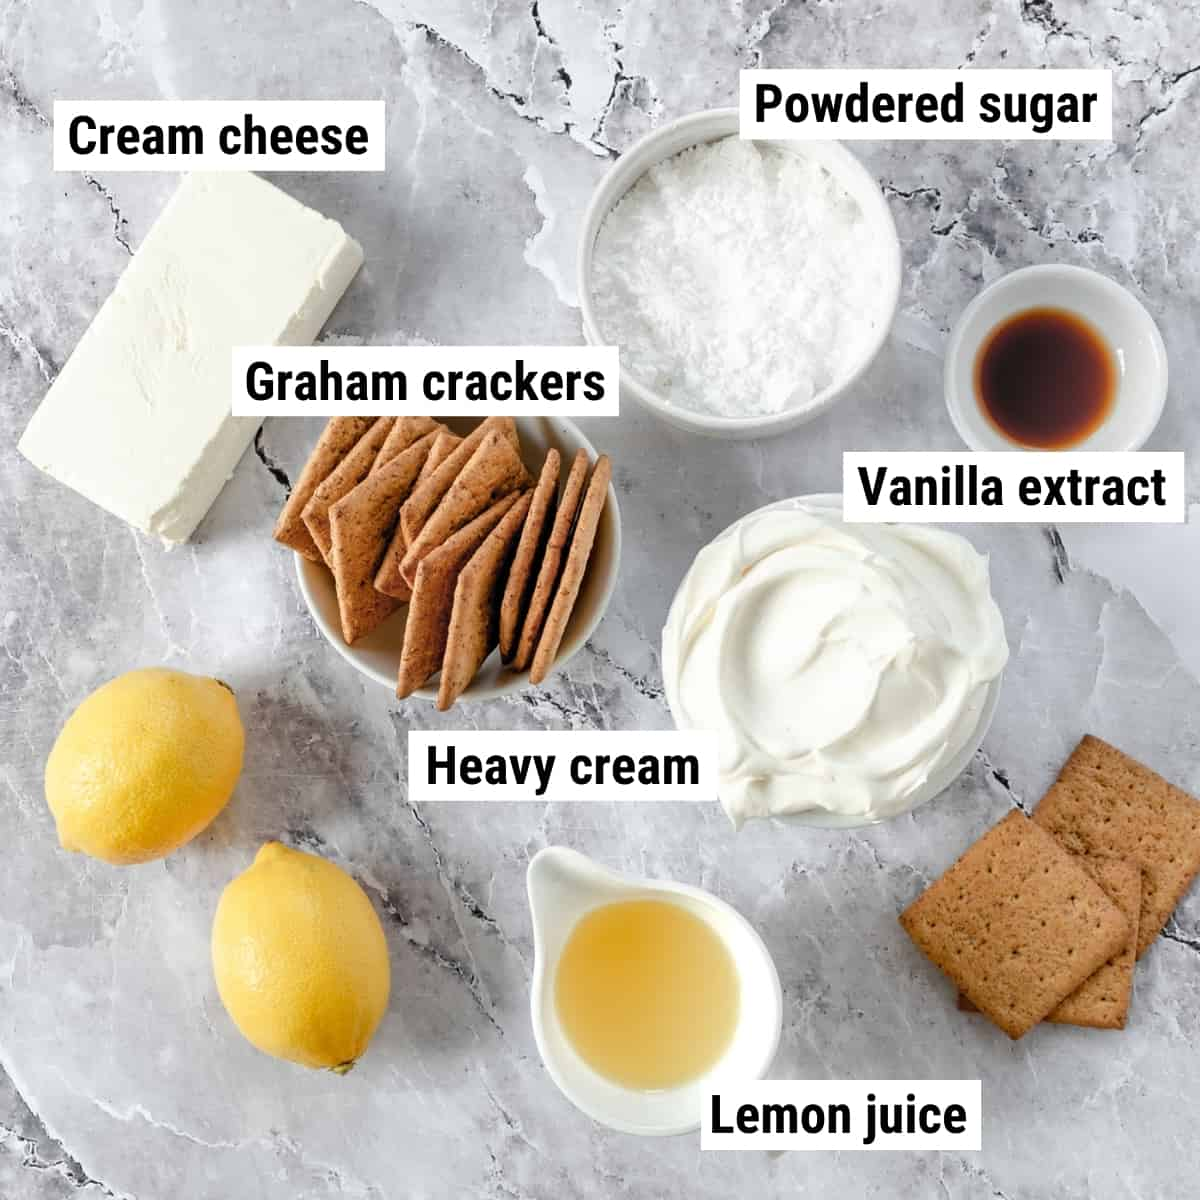 The ingredients to make a lemon icebox cake laid out on a table.